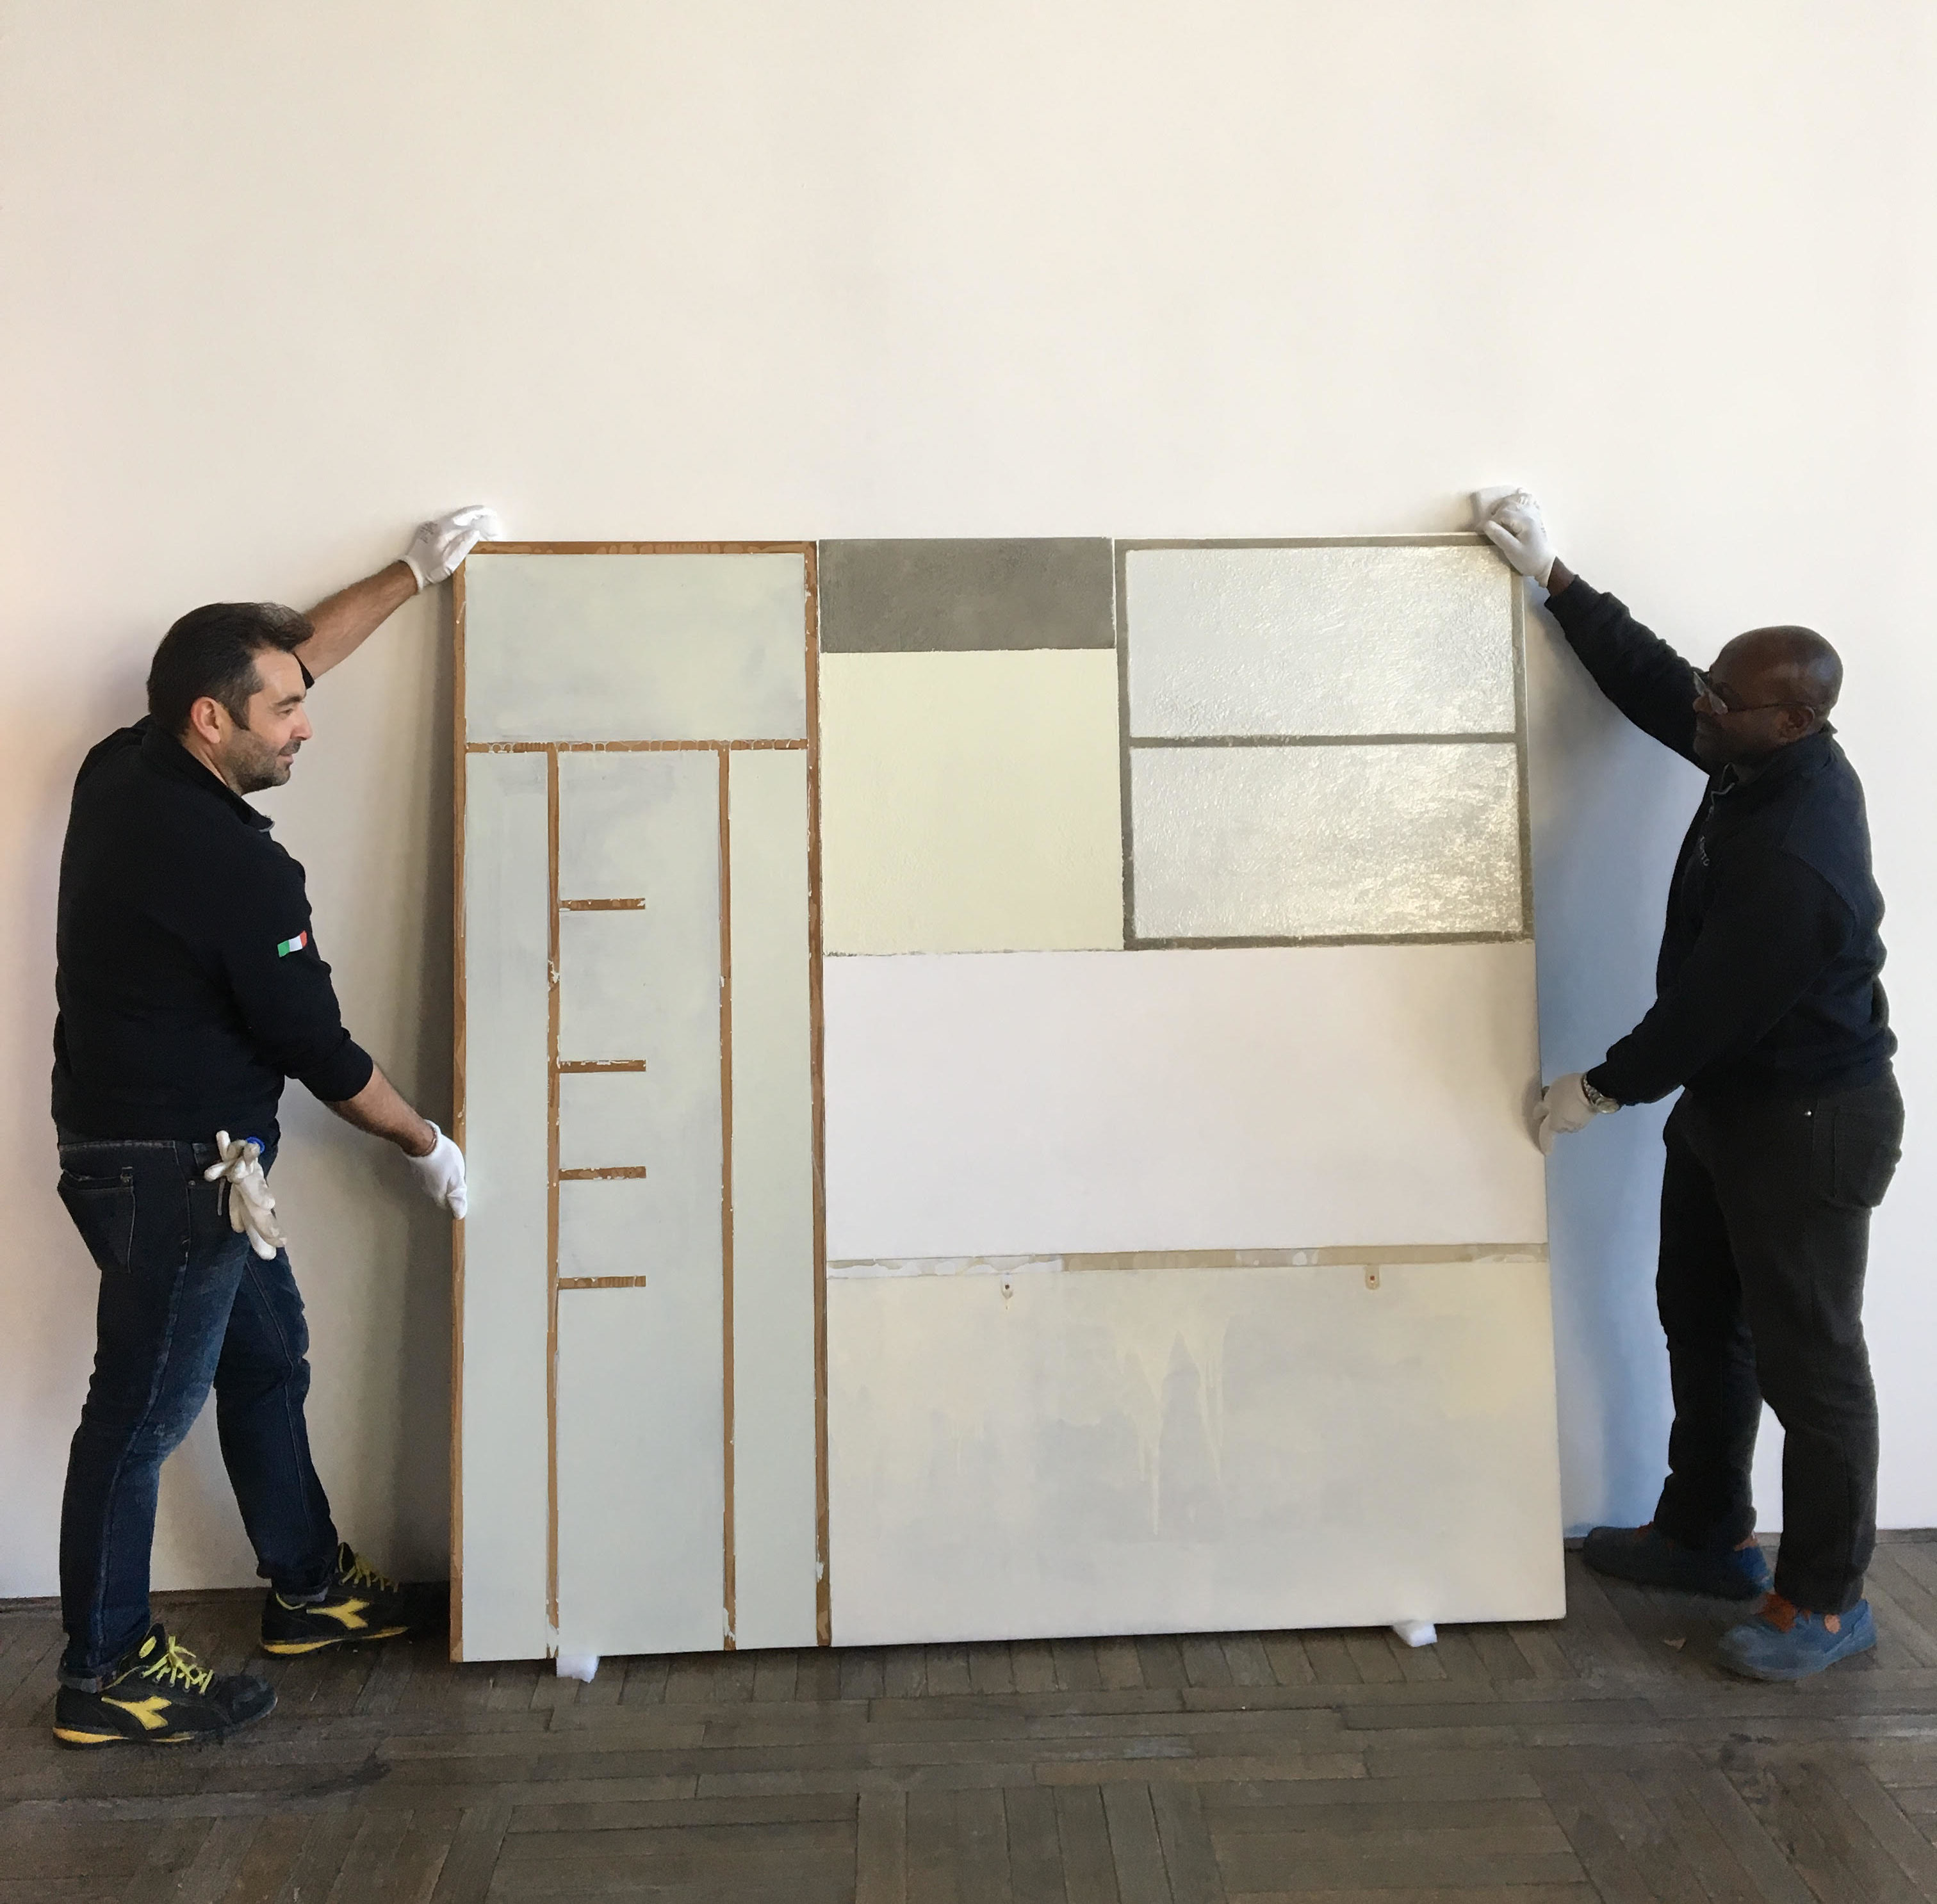 Safety in the moving of artworks